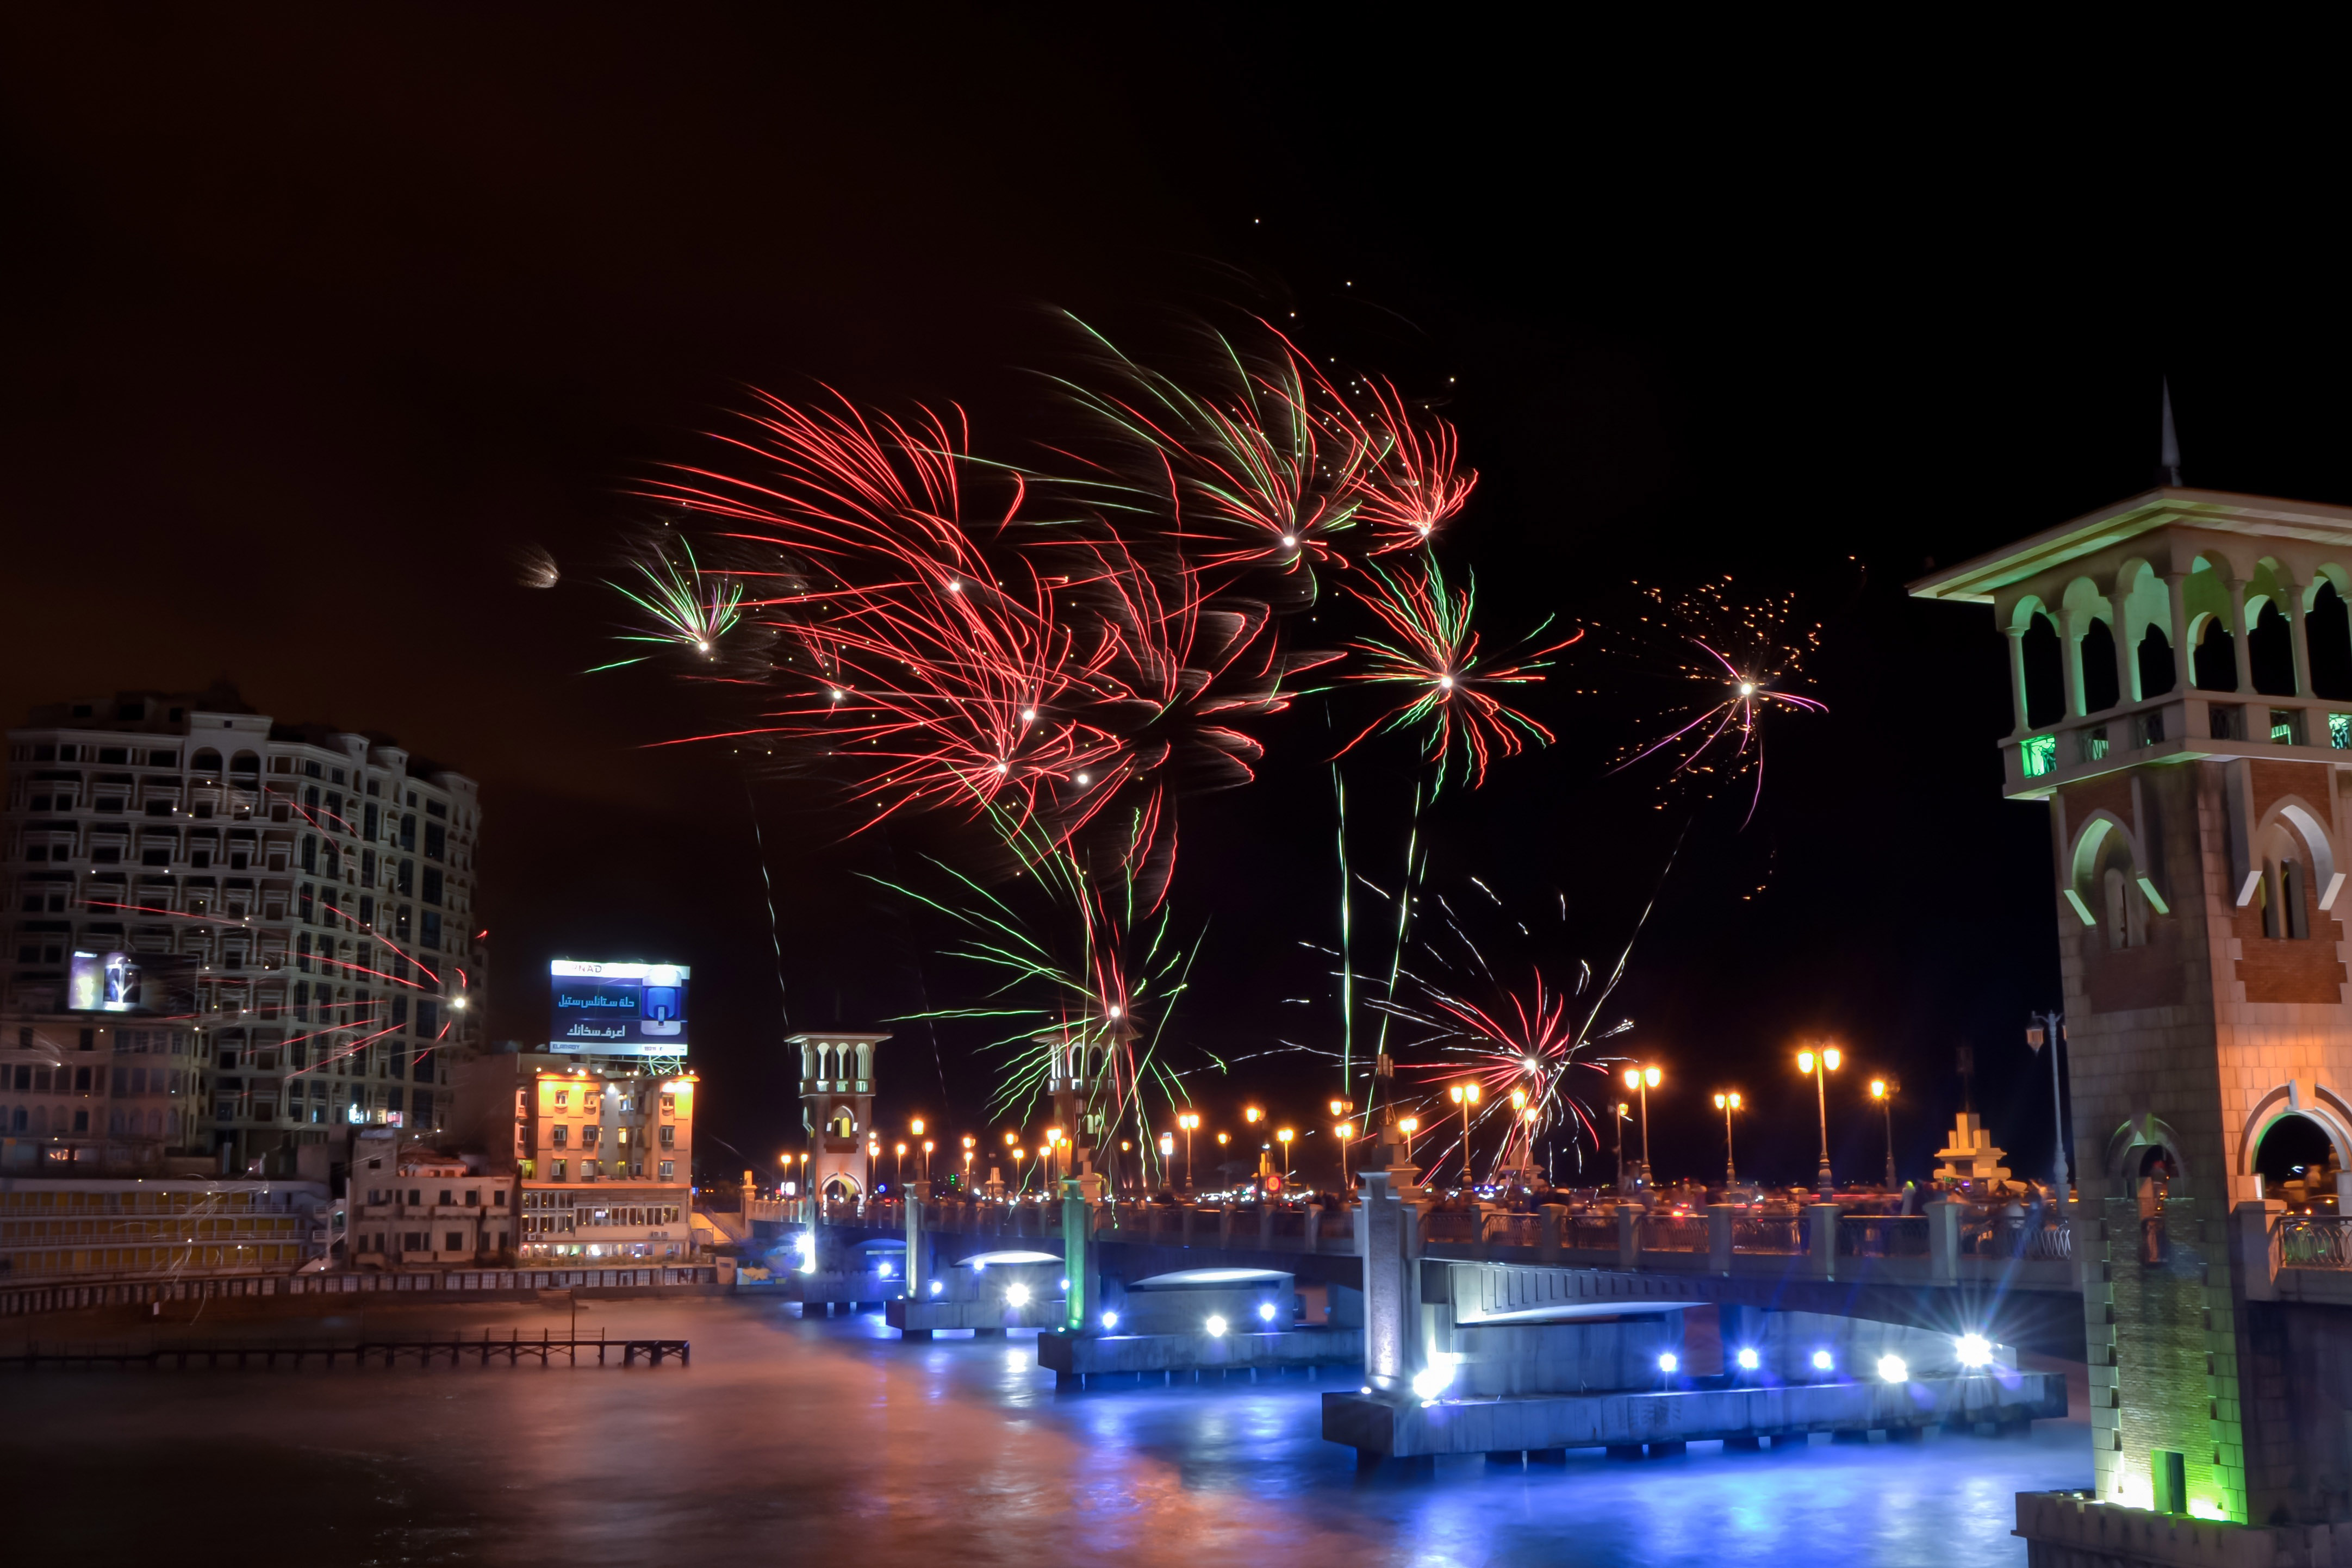 Wallpaper Desktop Hd Quotes Fireworks Over The Night Sky In Alexandria Egypt Image